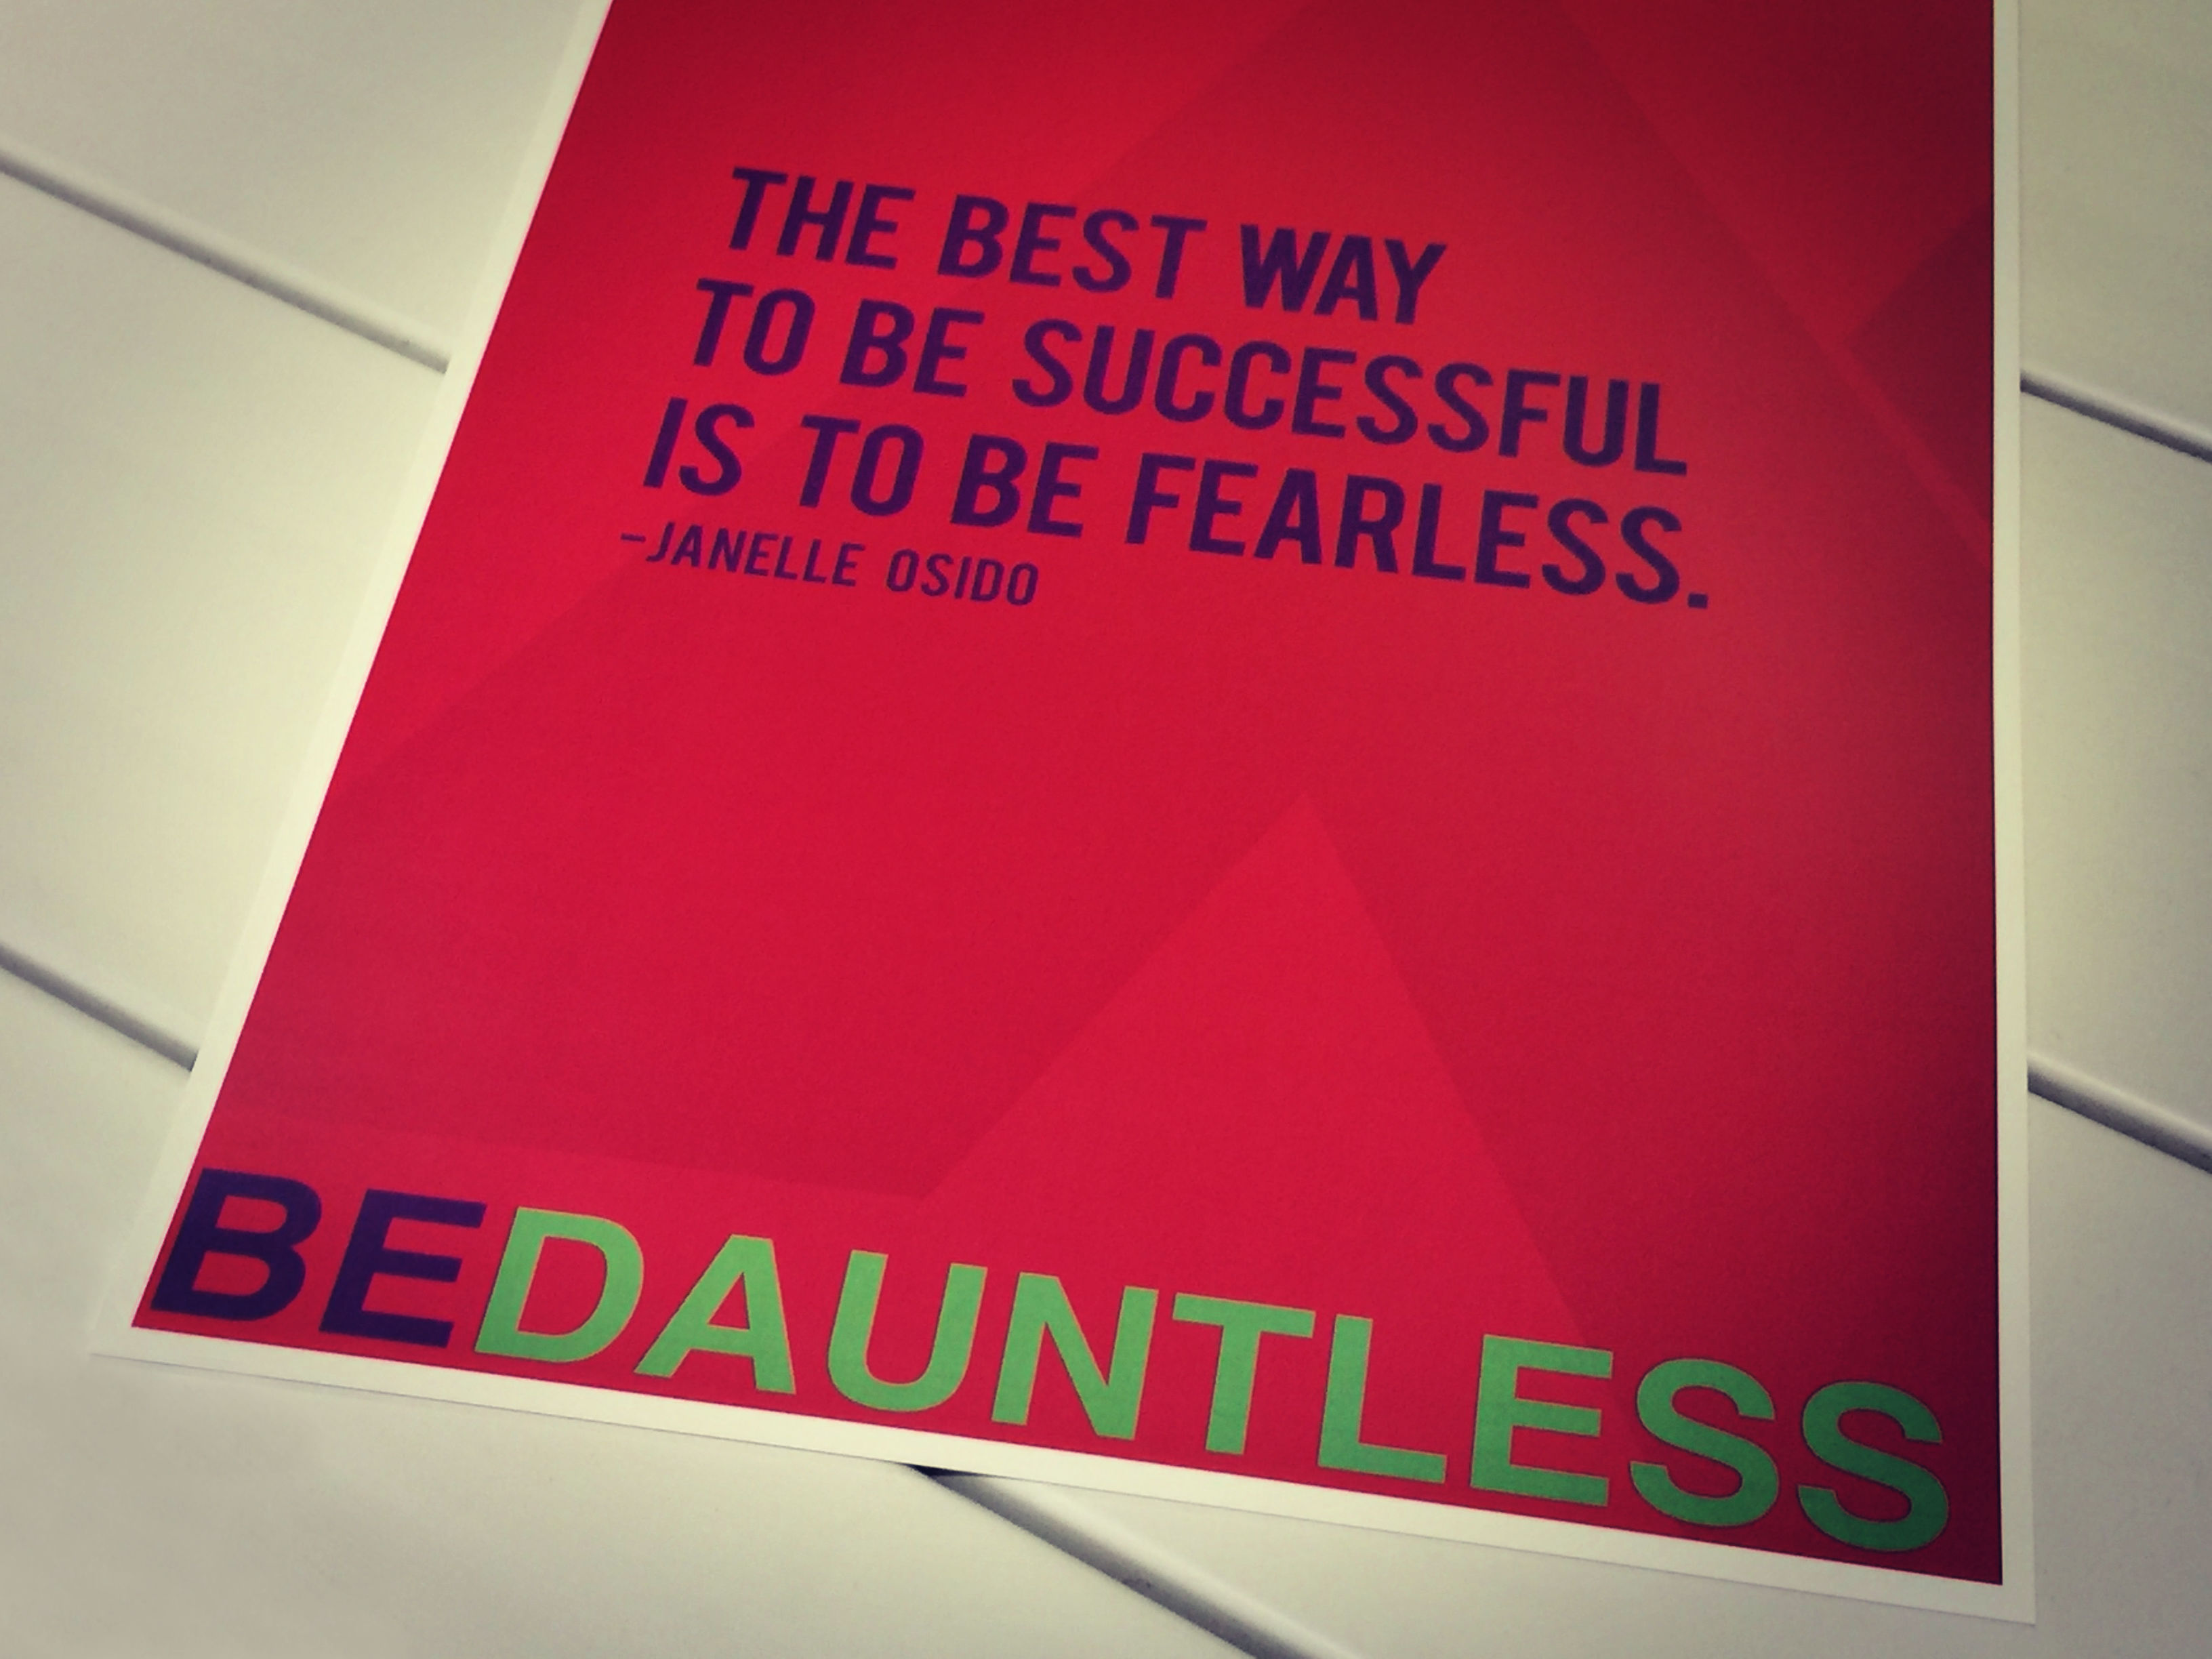 Be Dauntless